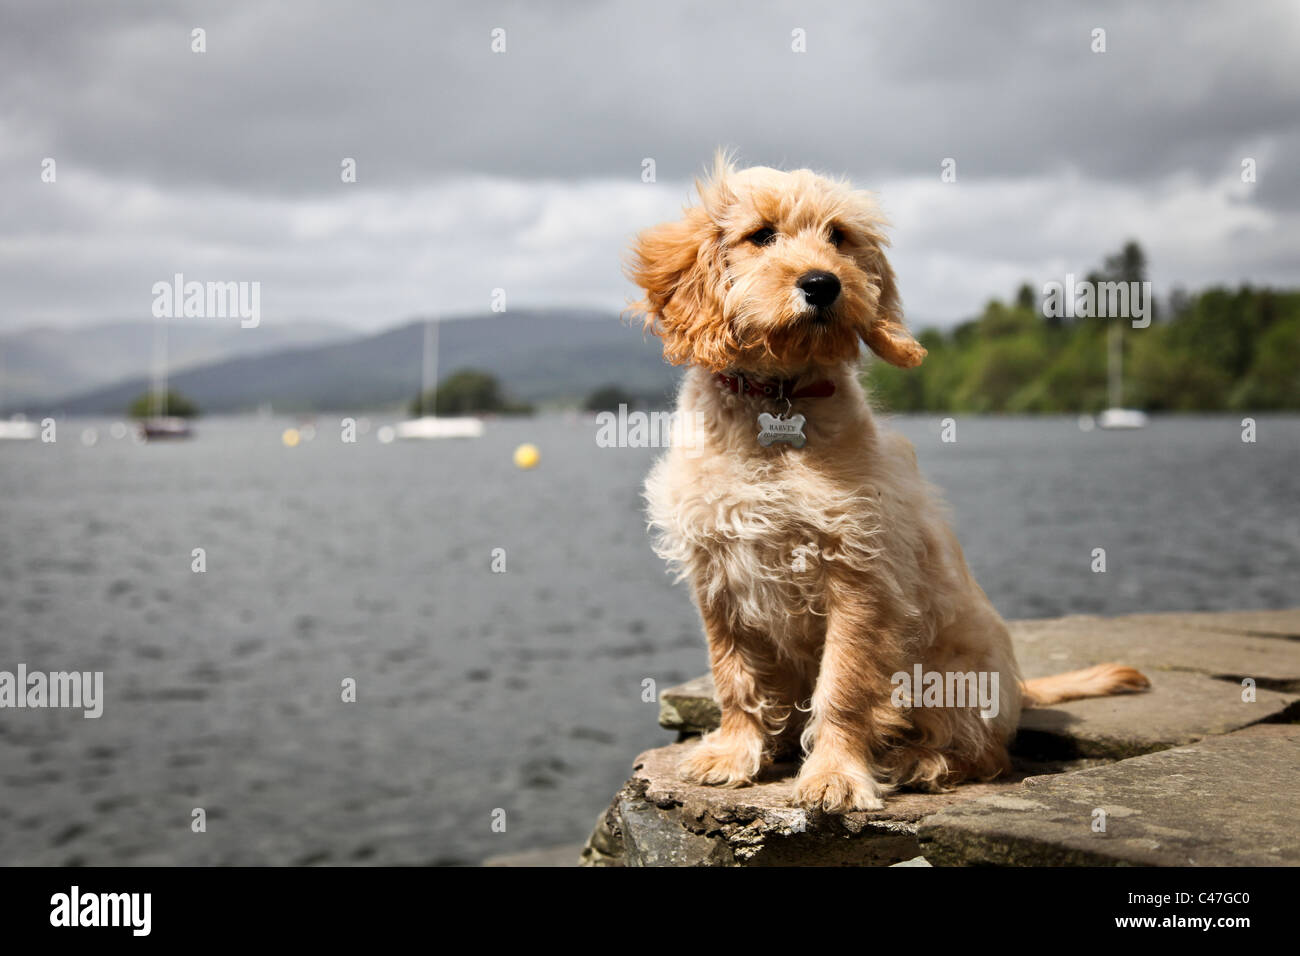 Cockapoo Puppy Dog on a rock next to a lake - Stock Image